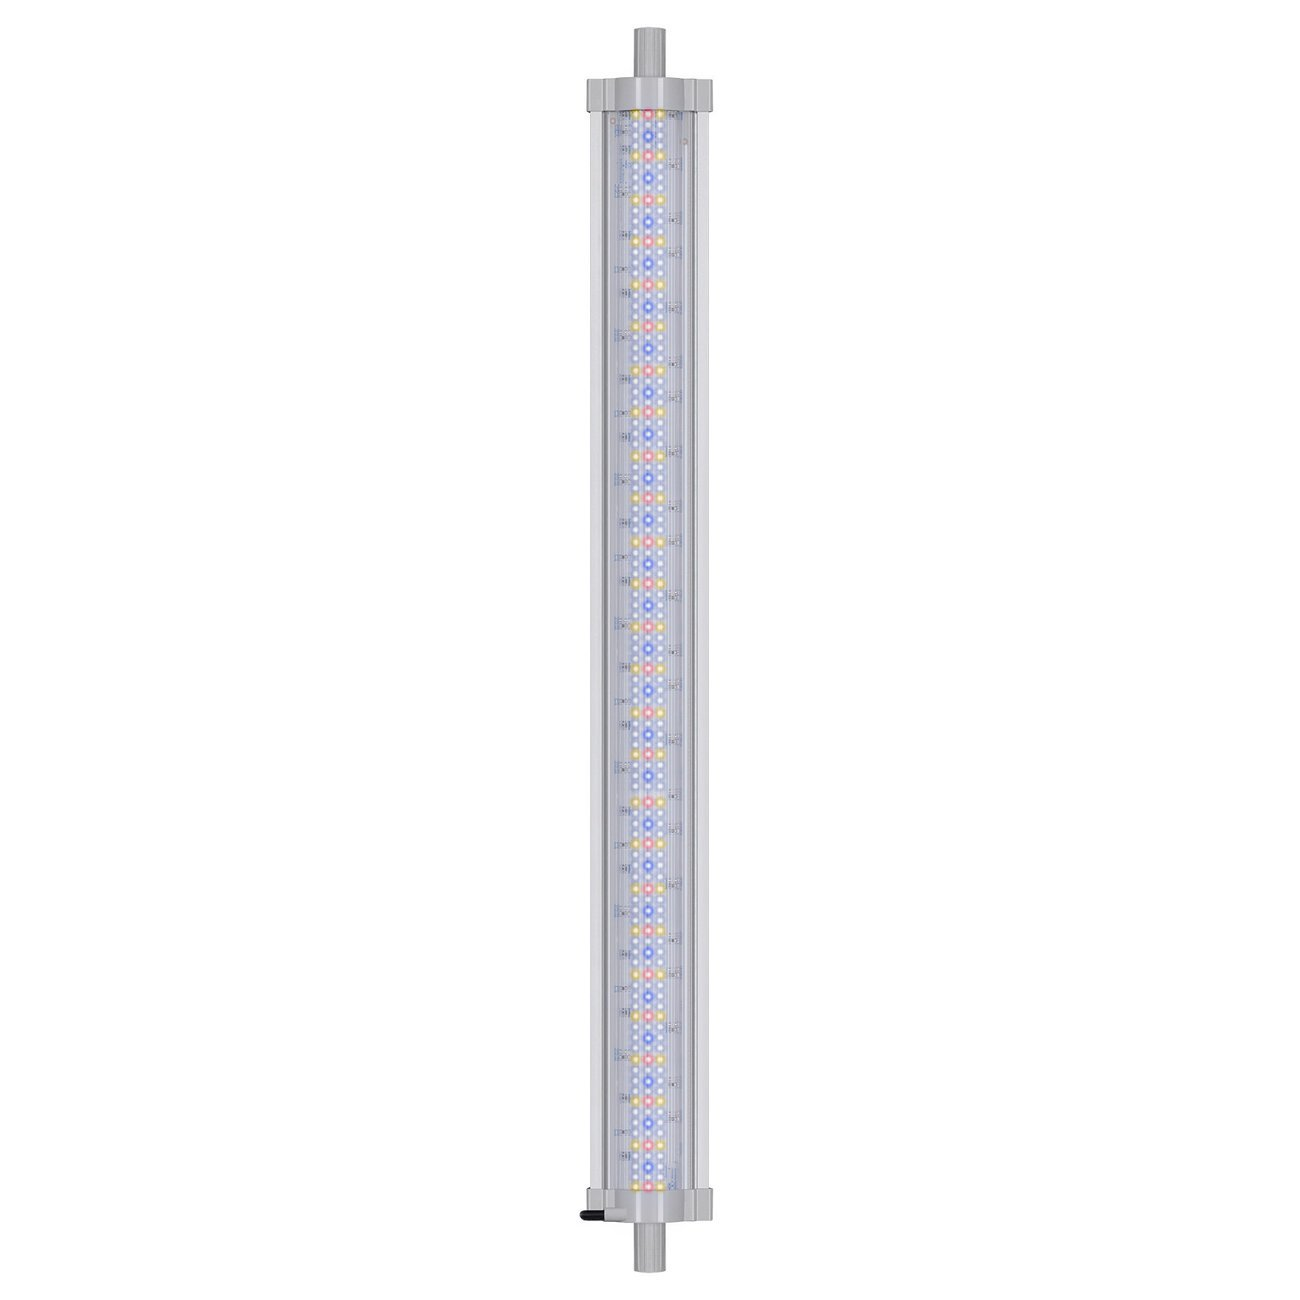 Aquatlantis Easy LED Universal 2.0 Freshwater, 590mm